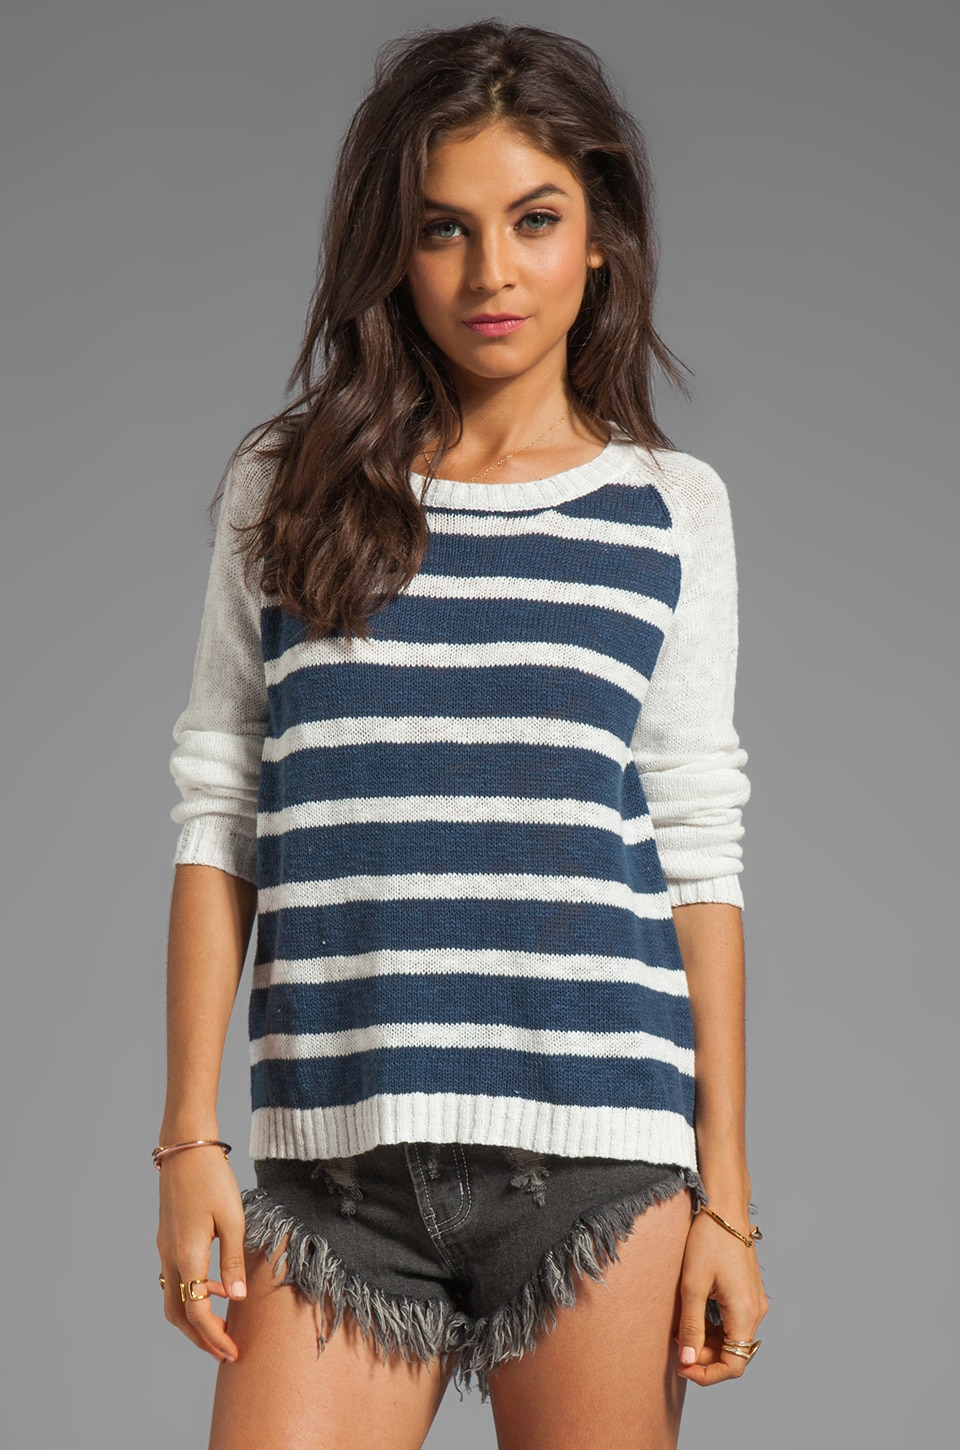 MINKPINK Cruising Raglan Jumper in White/Navy